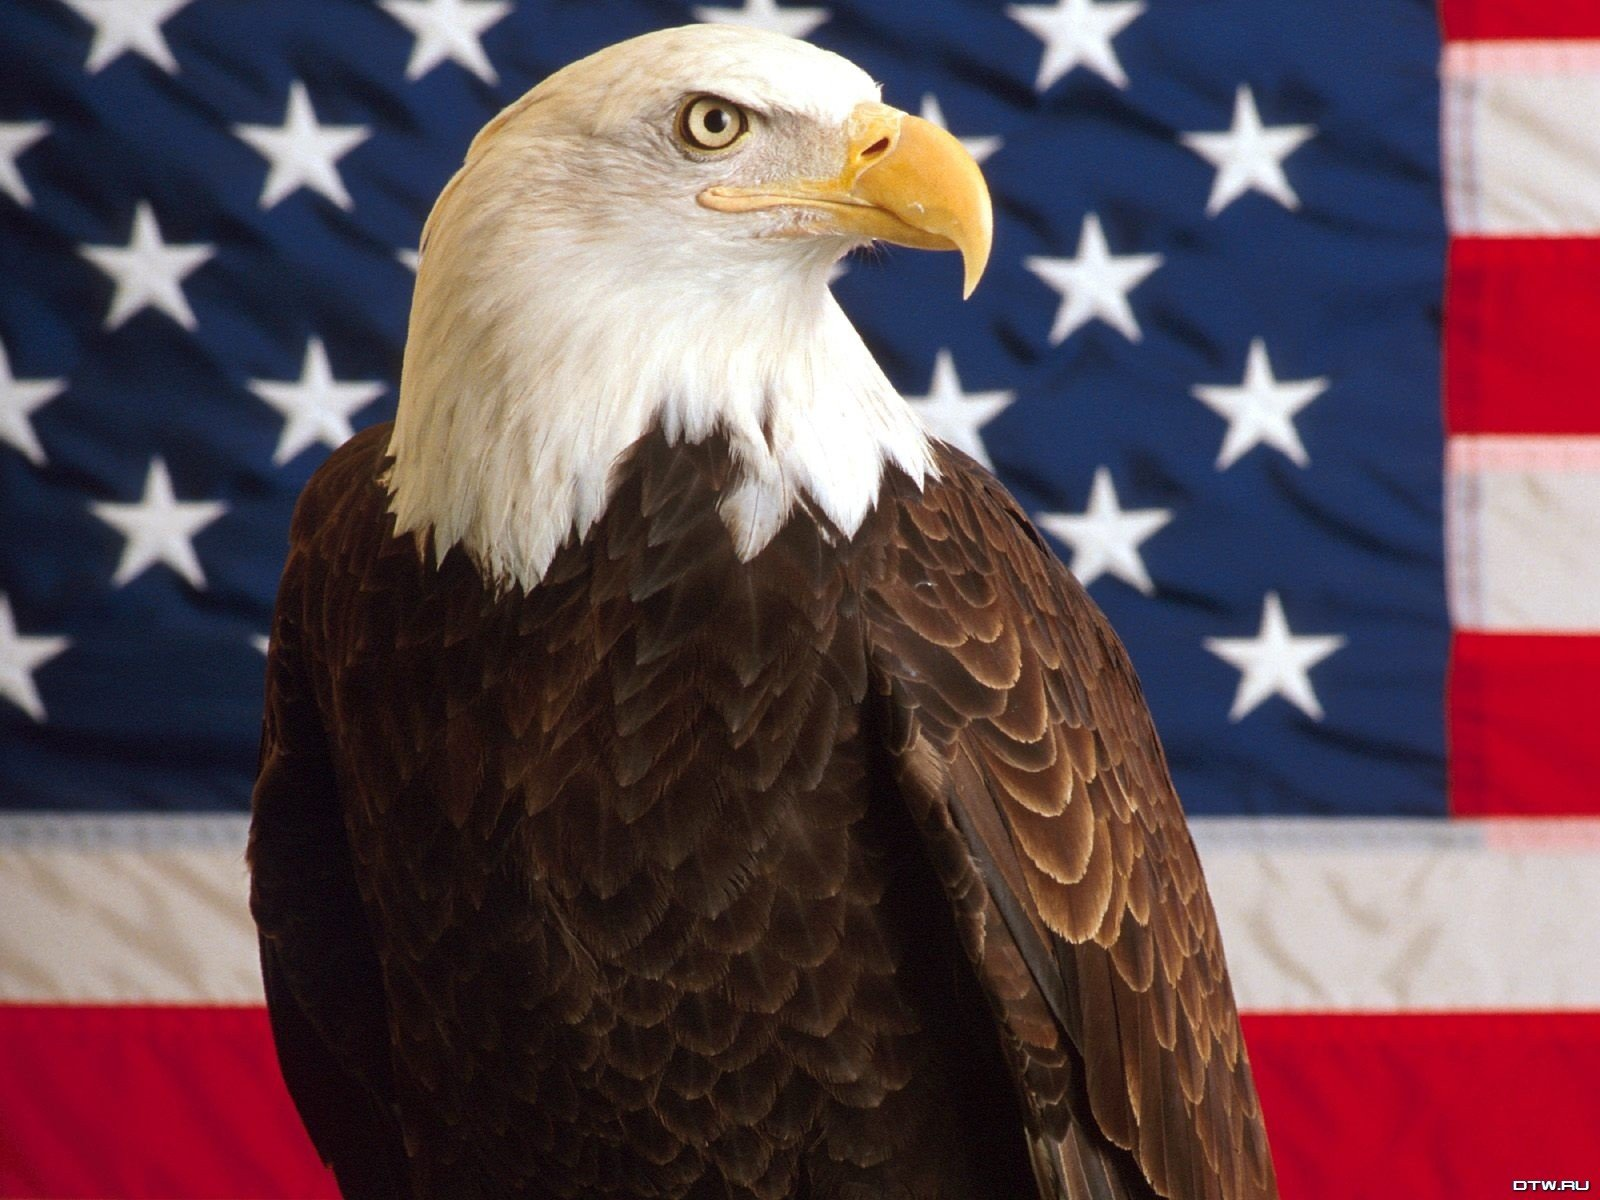 eagle and flag images hd american eagle and flag pics 1600x1200